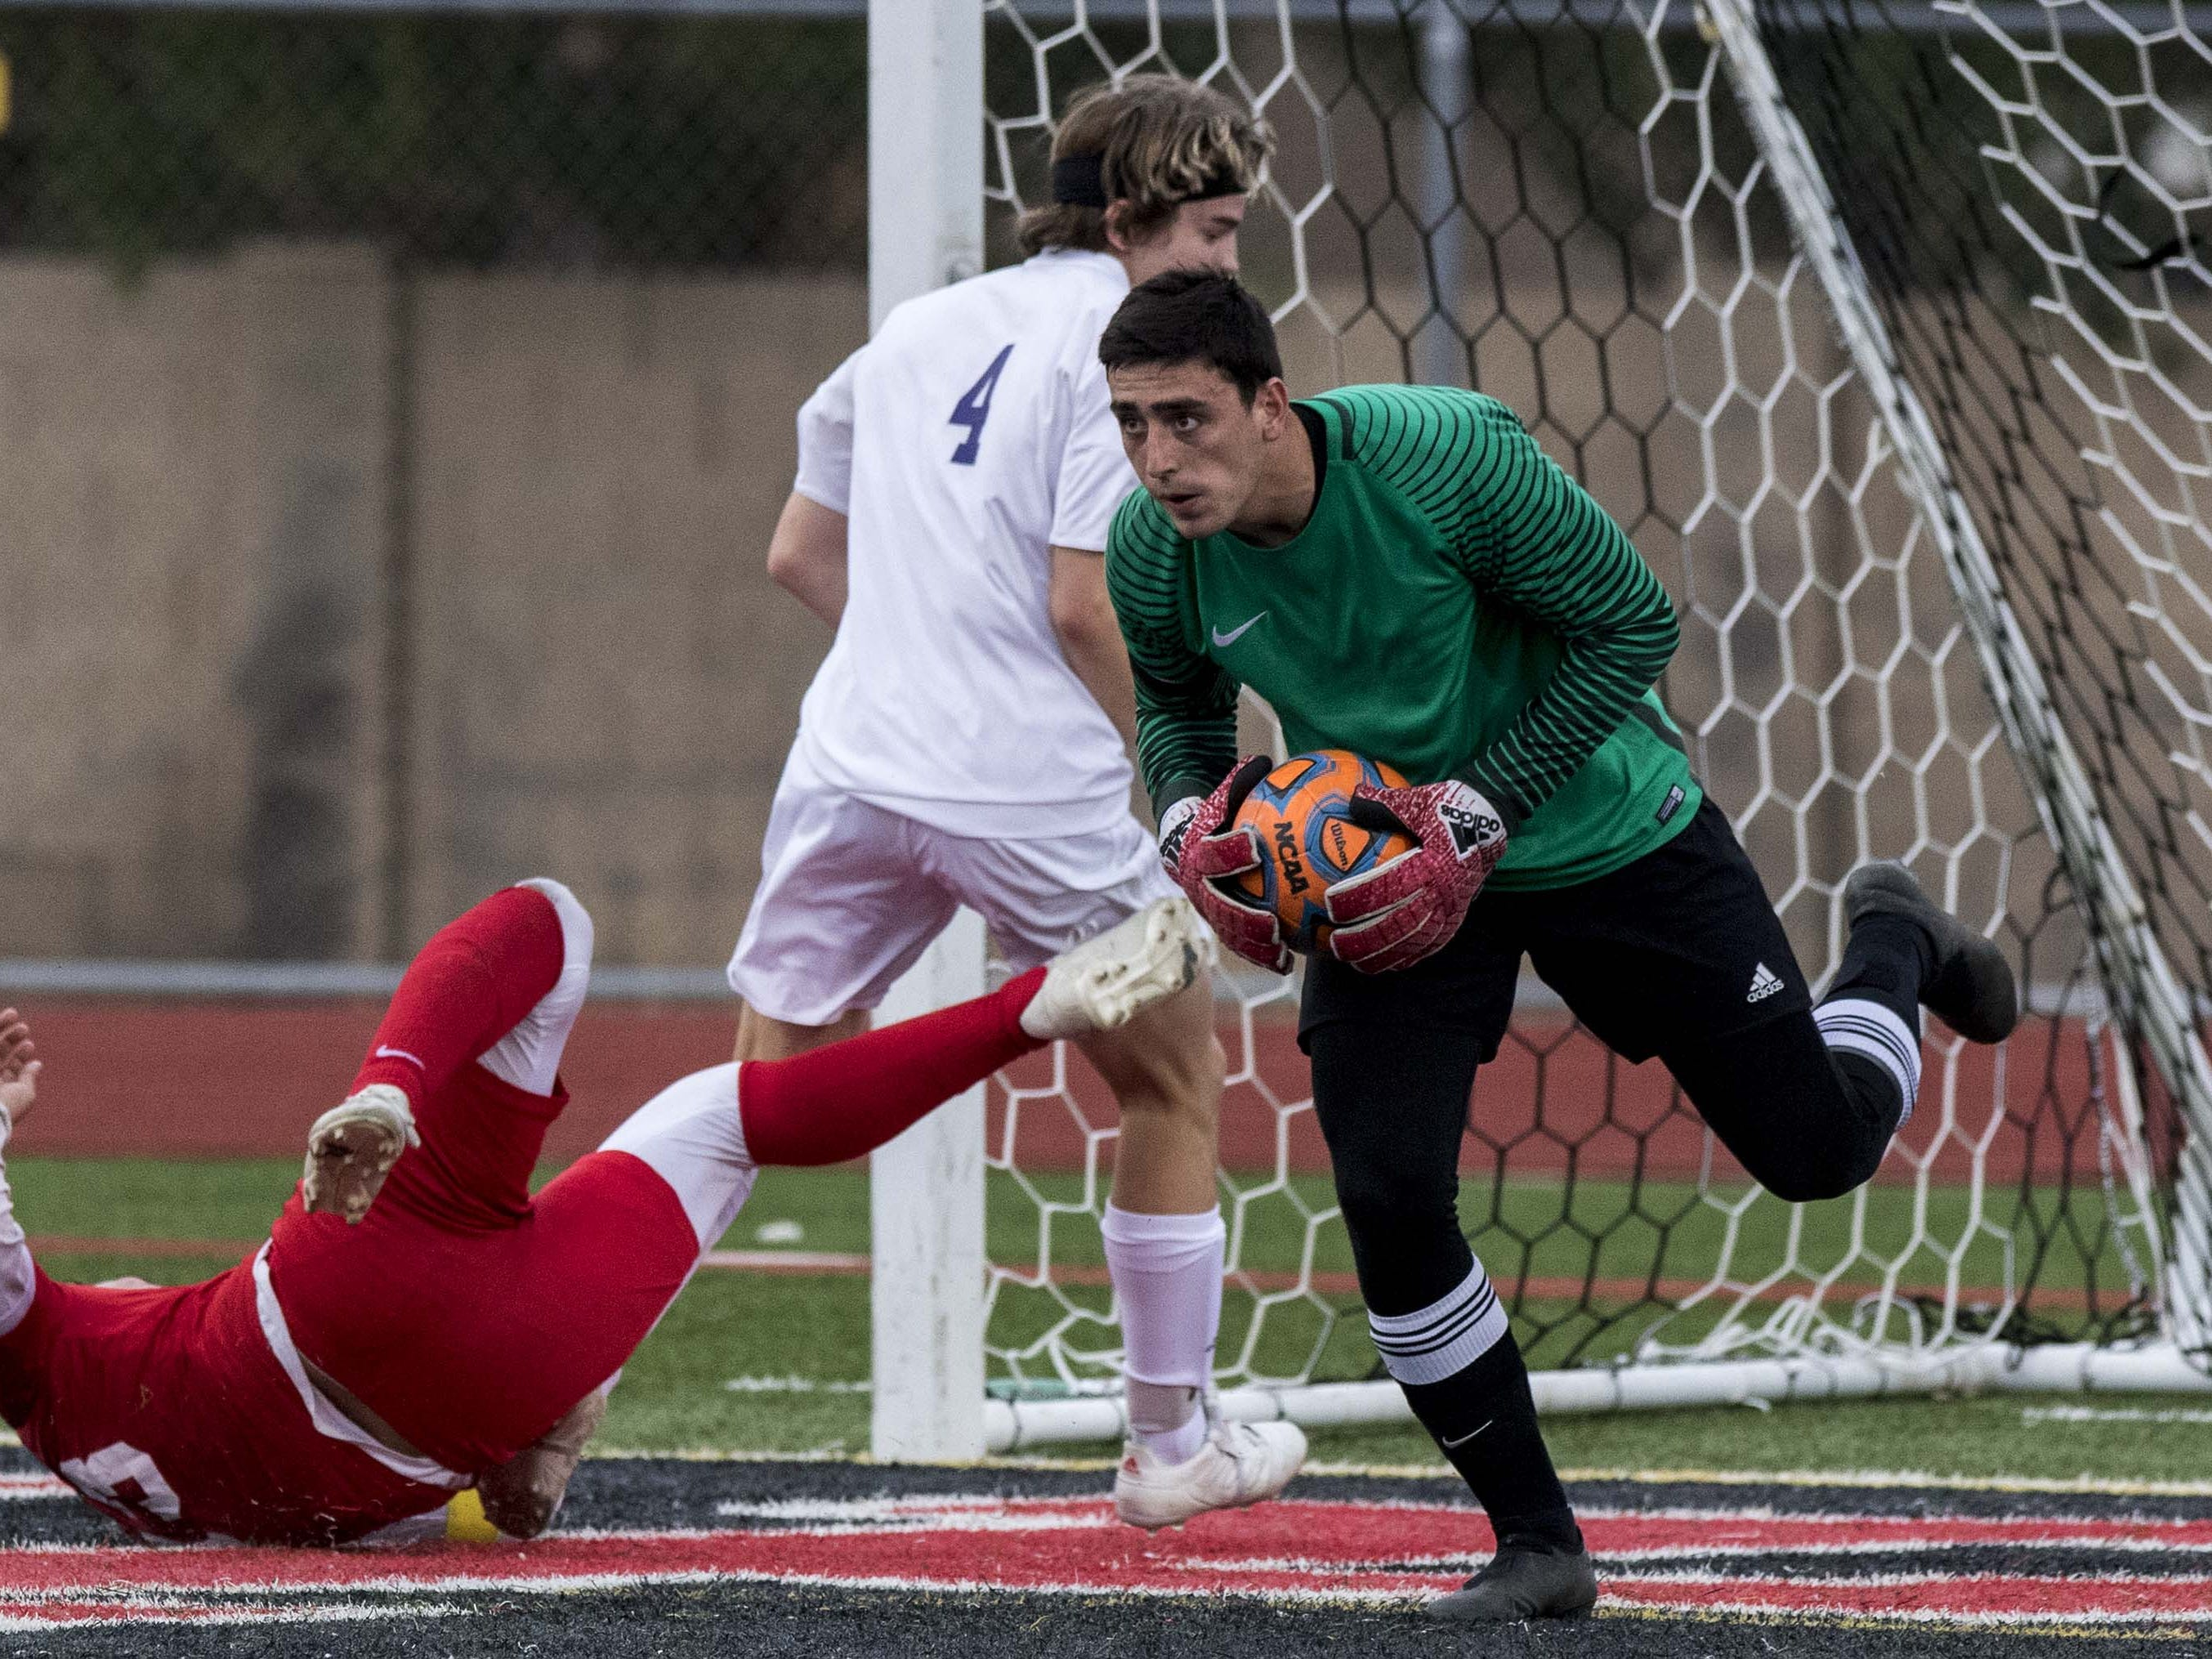 Northwest Christian goalie Ben Ogan (0) cradles the ball as  Coronado's Adan Valle (13) gets tied up with Northwest Christian's Levi Delapiedra (4) during the 3A State Championship game in Chandler, Friday, Feb .15,  2019.